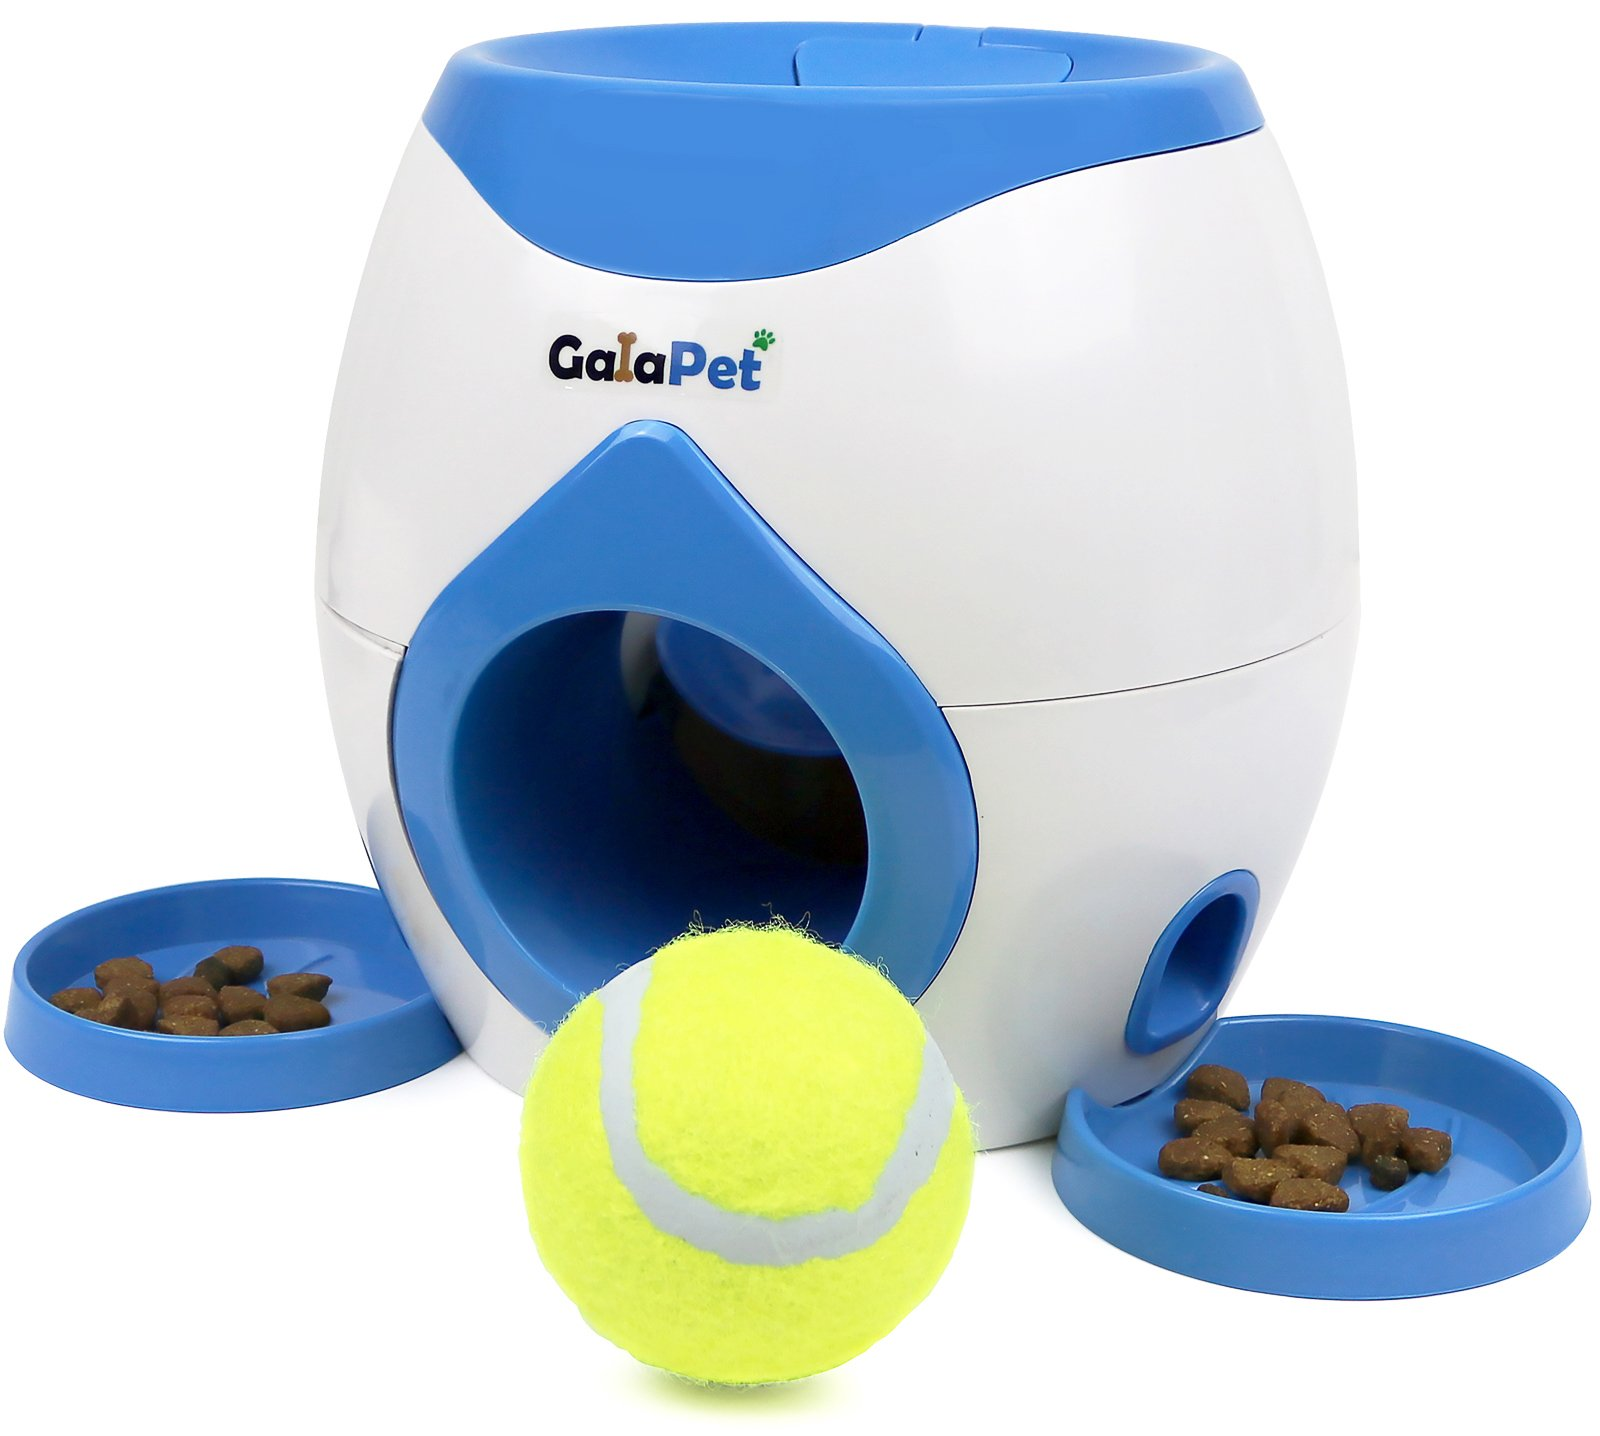 GalaPet Fetch and Treat Toy for Dogs, Tennis Ball included